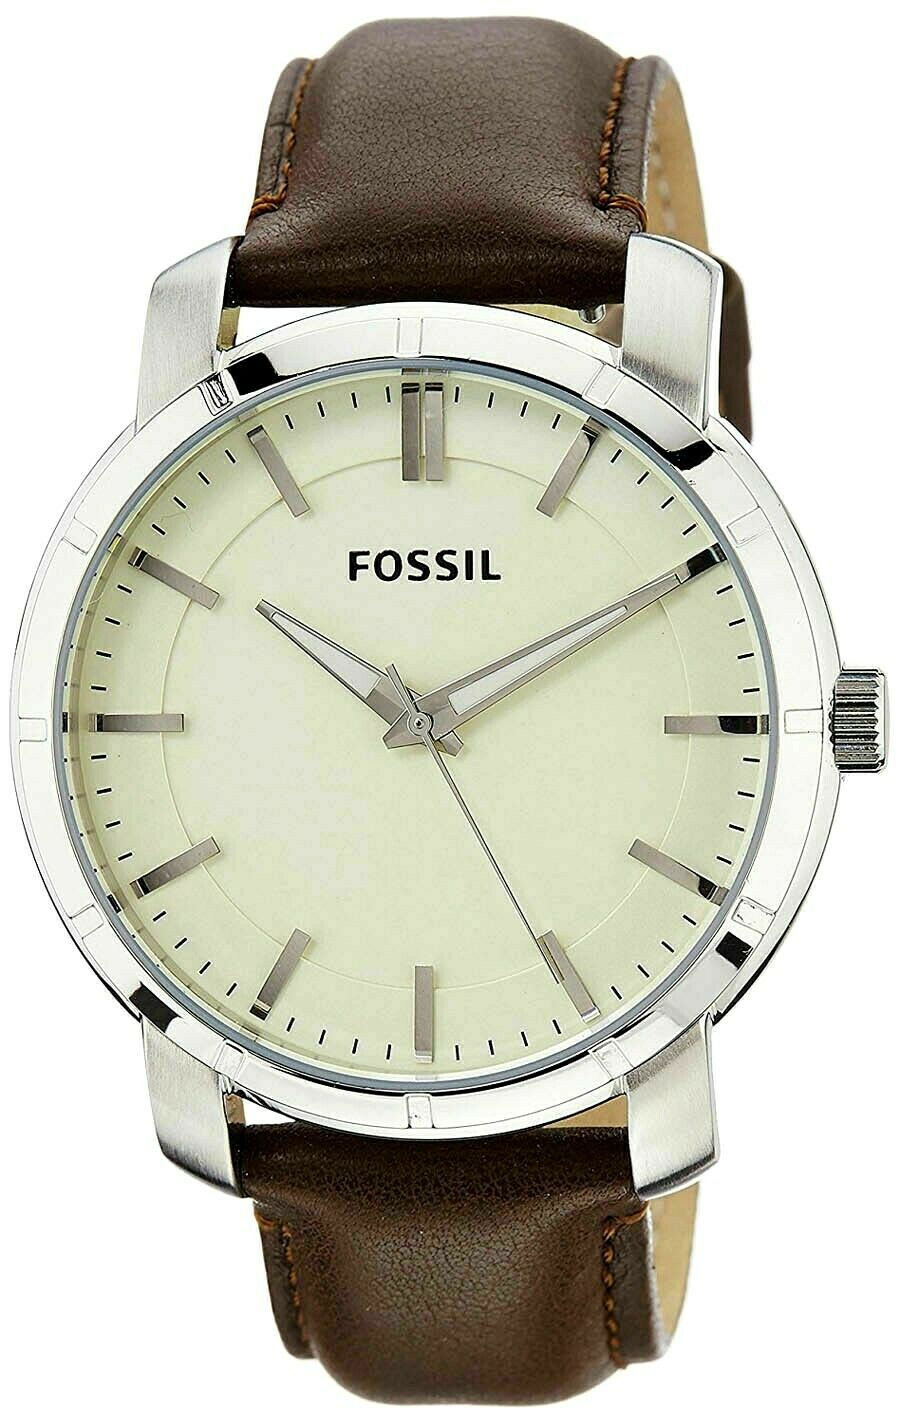 Fossil Off White Dial Brown Silver Leather Strap Men's Watch BQ1285